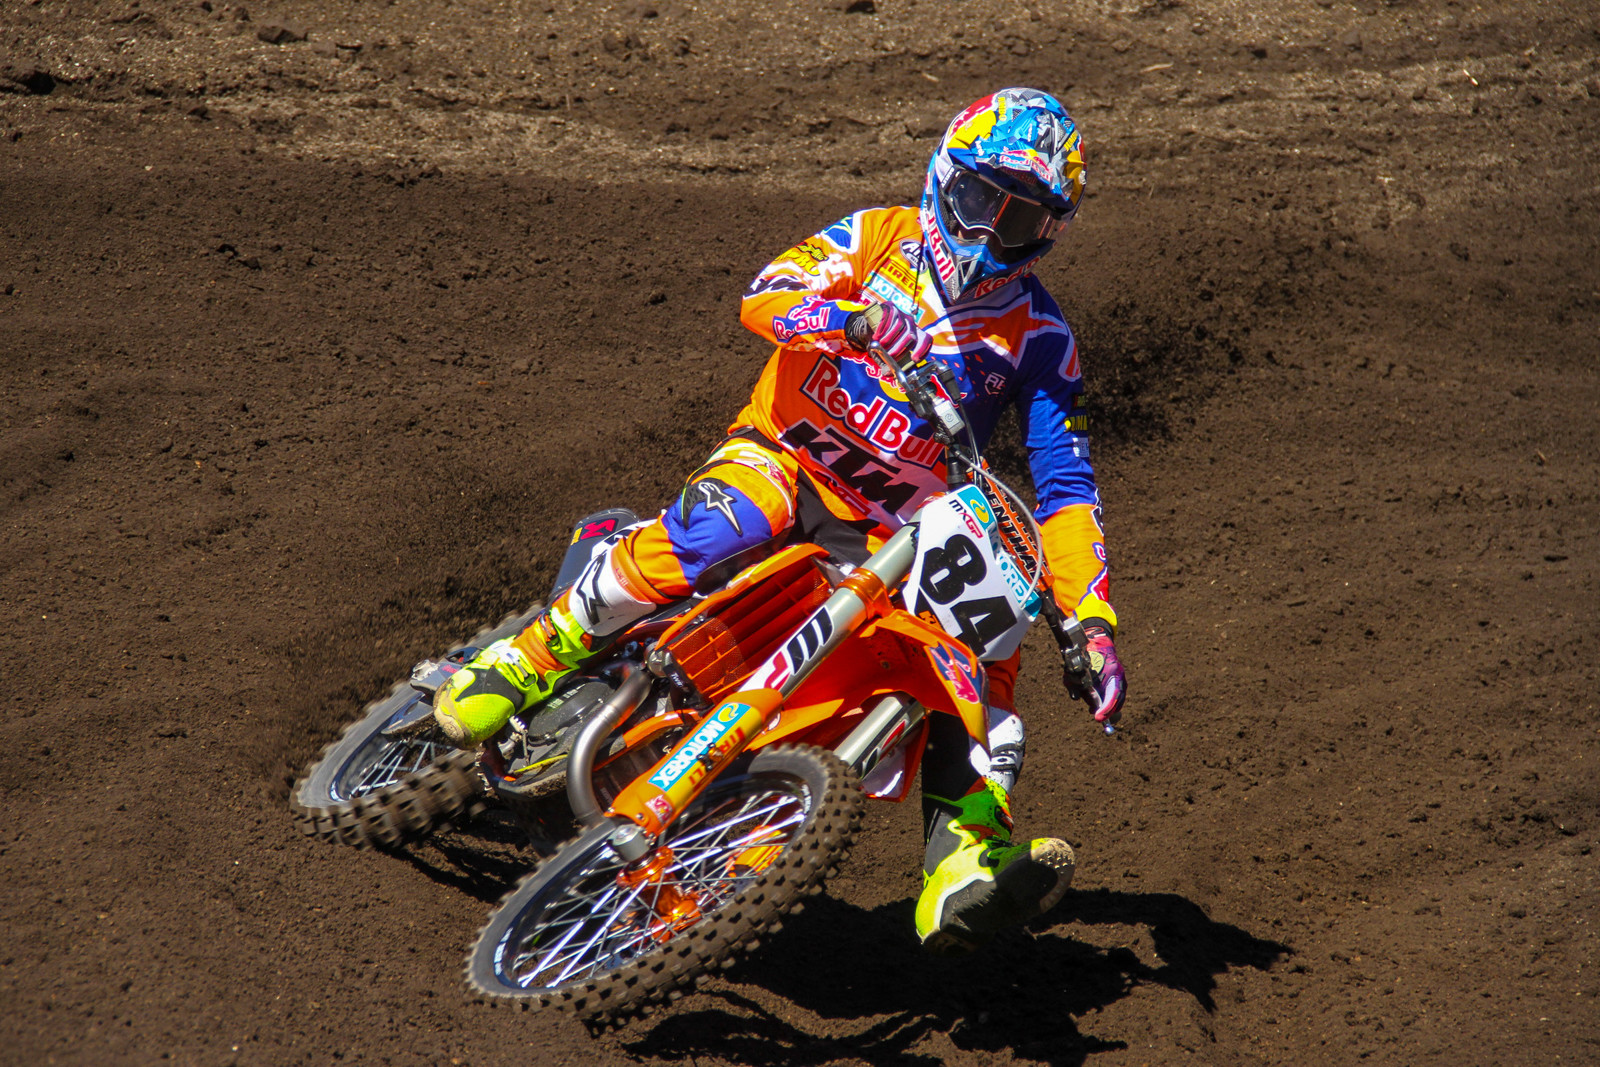 Jeffrey Herlings came into his second MXGP season healthy and ready to go, trading moto wins with the defending champion Antonio Cairoli.